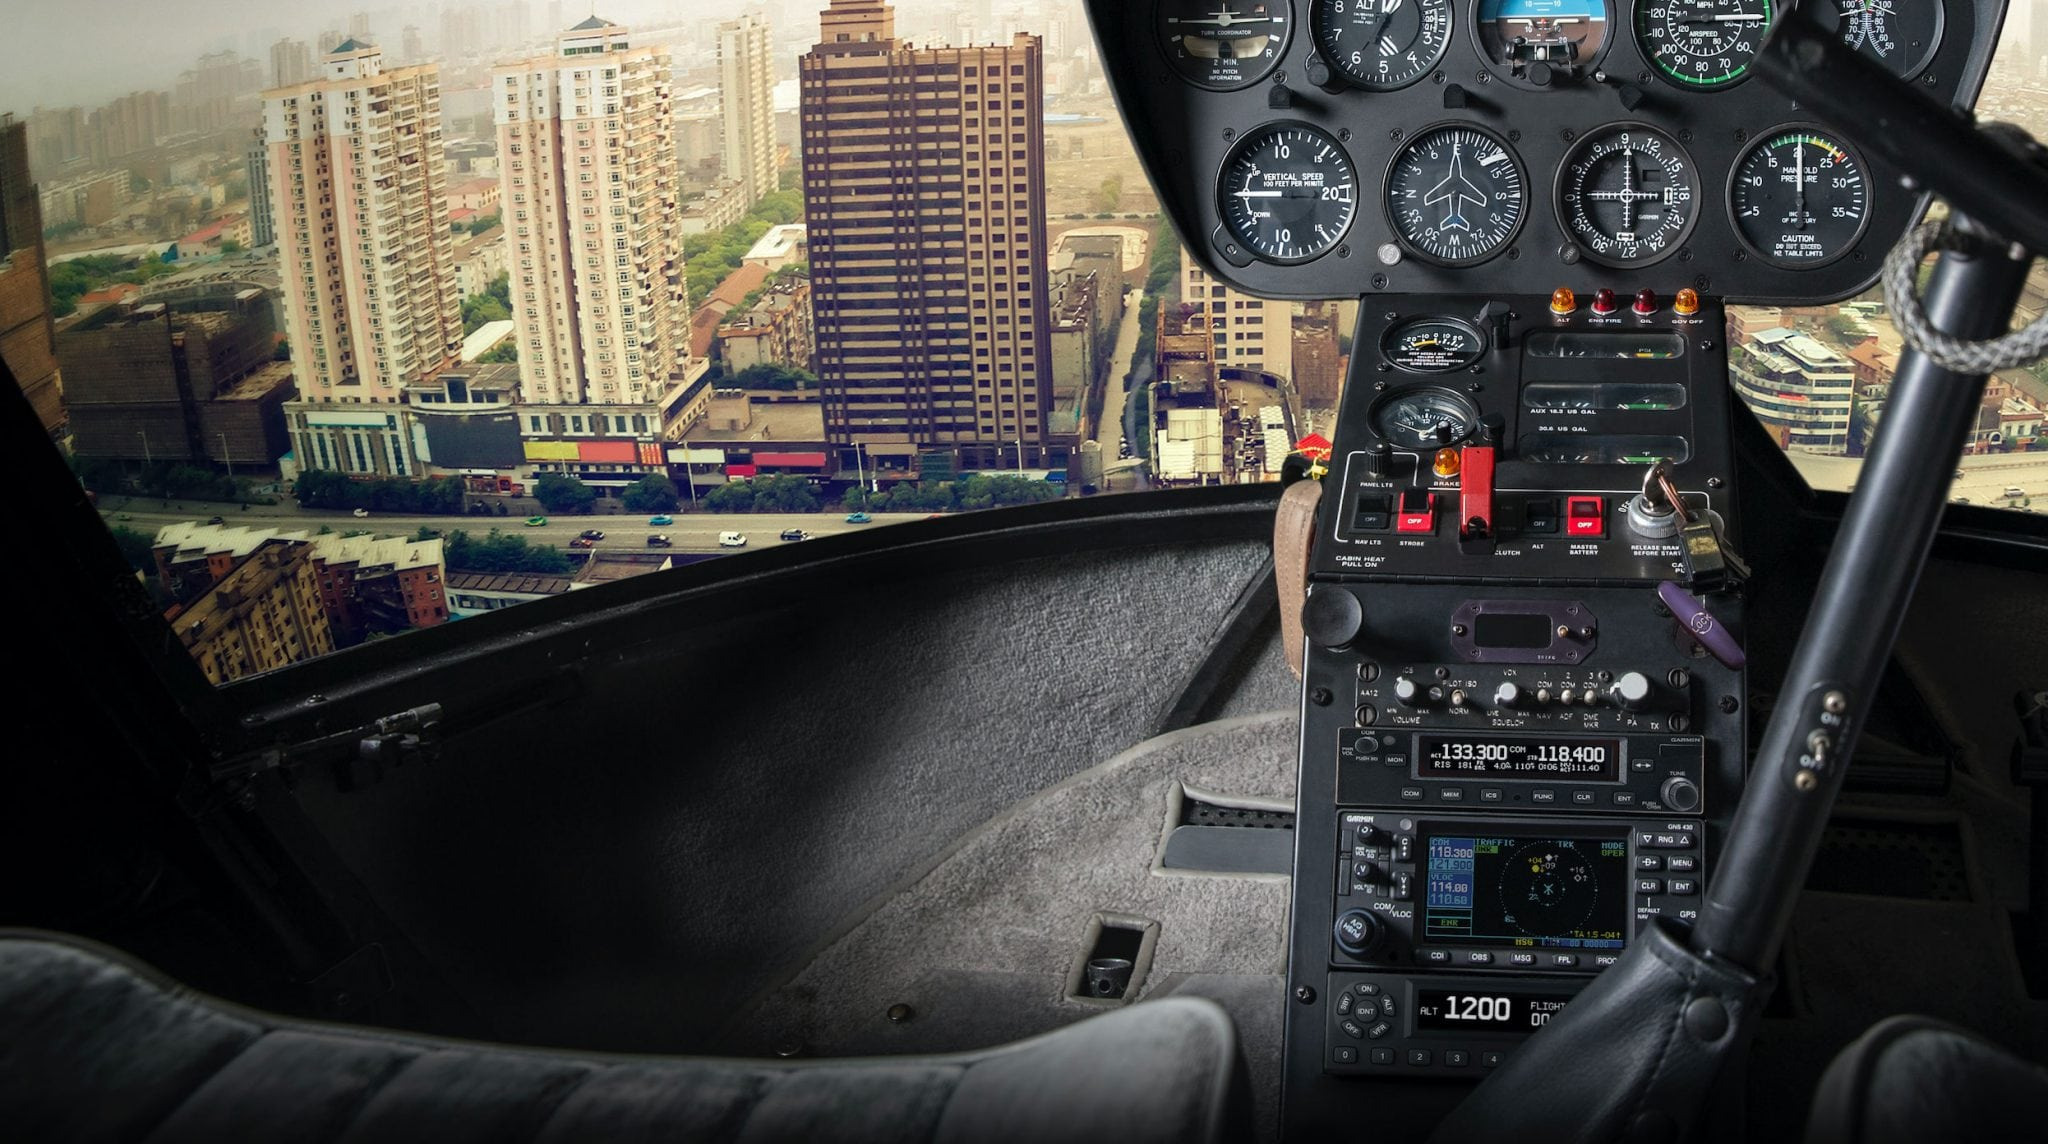 Garmin International announced that the FAA has granted STC for the installation of the GTX 345 ADS-B In/Out and GTX 335 ADS-B Out transponders in an Approved Model List of Part 27 helicopters. Photo courtesy of Garmin